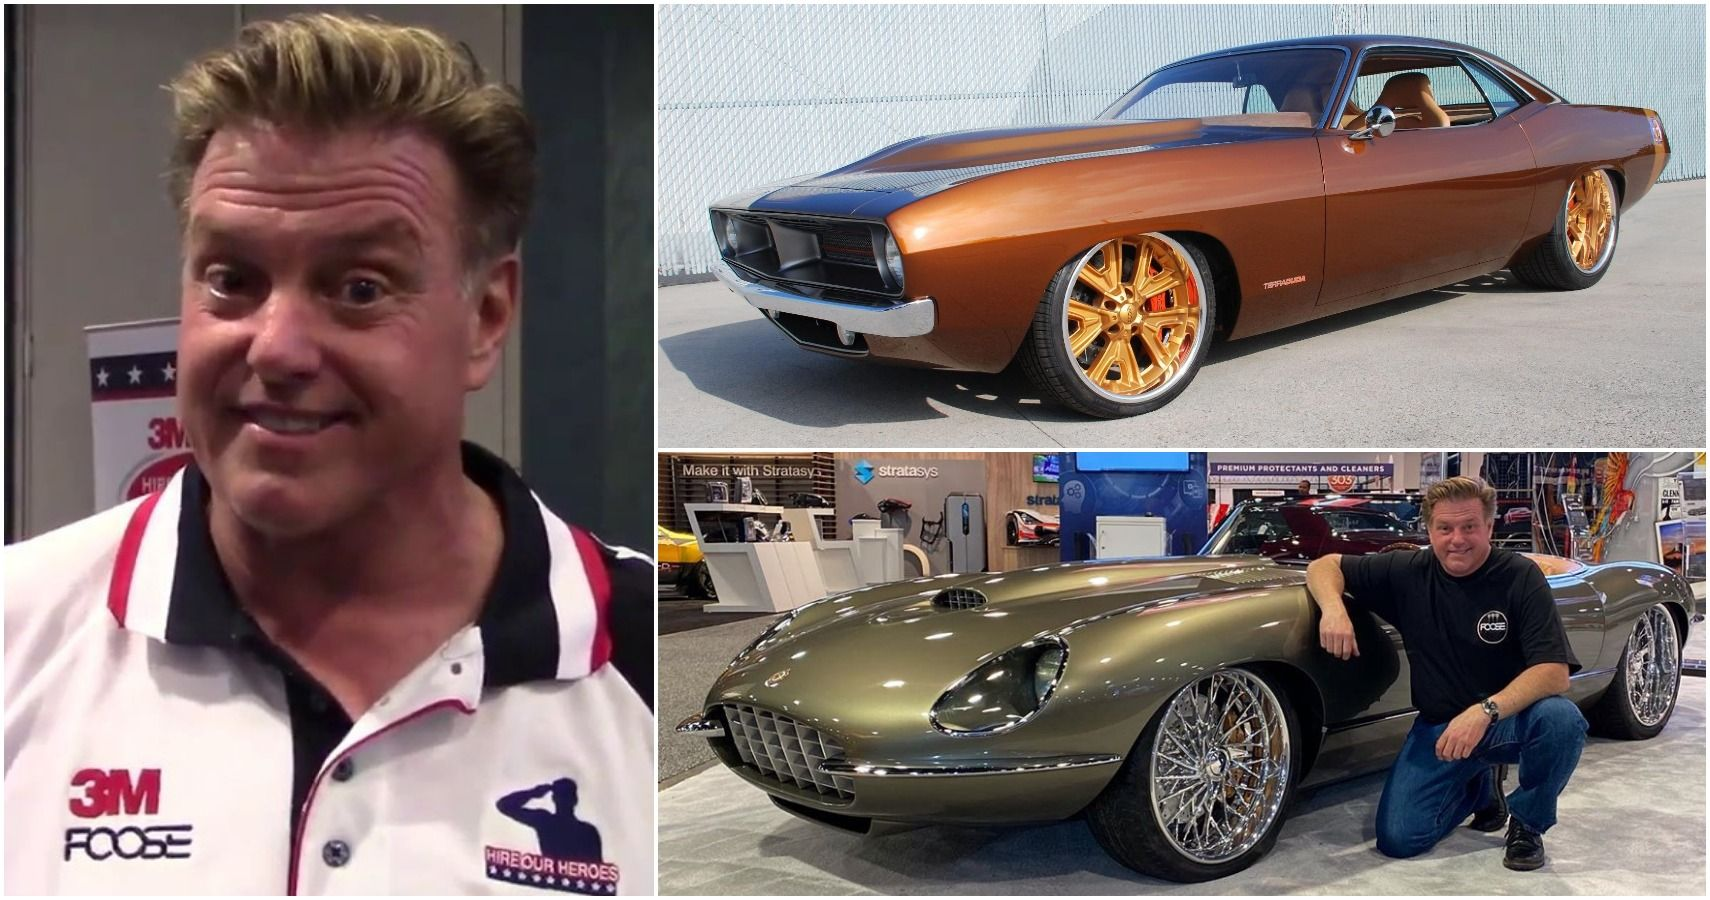 10 Of The Sickest Cars Custom-Made By Chip Foose Of Overhaulin'